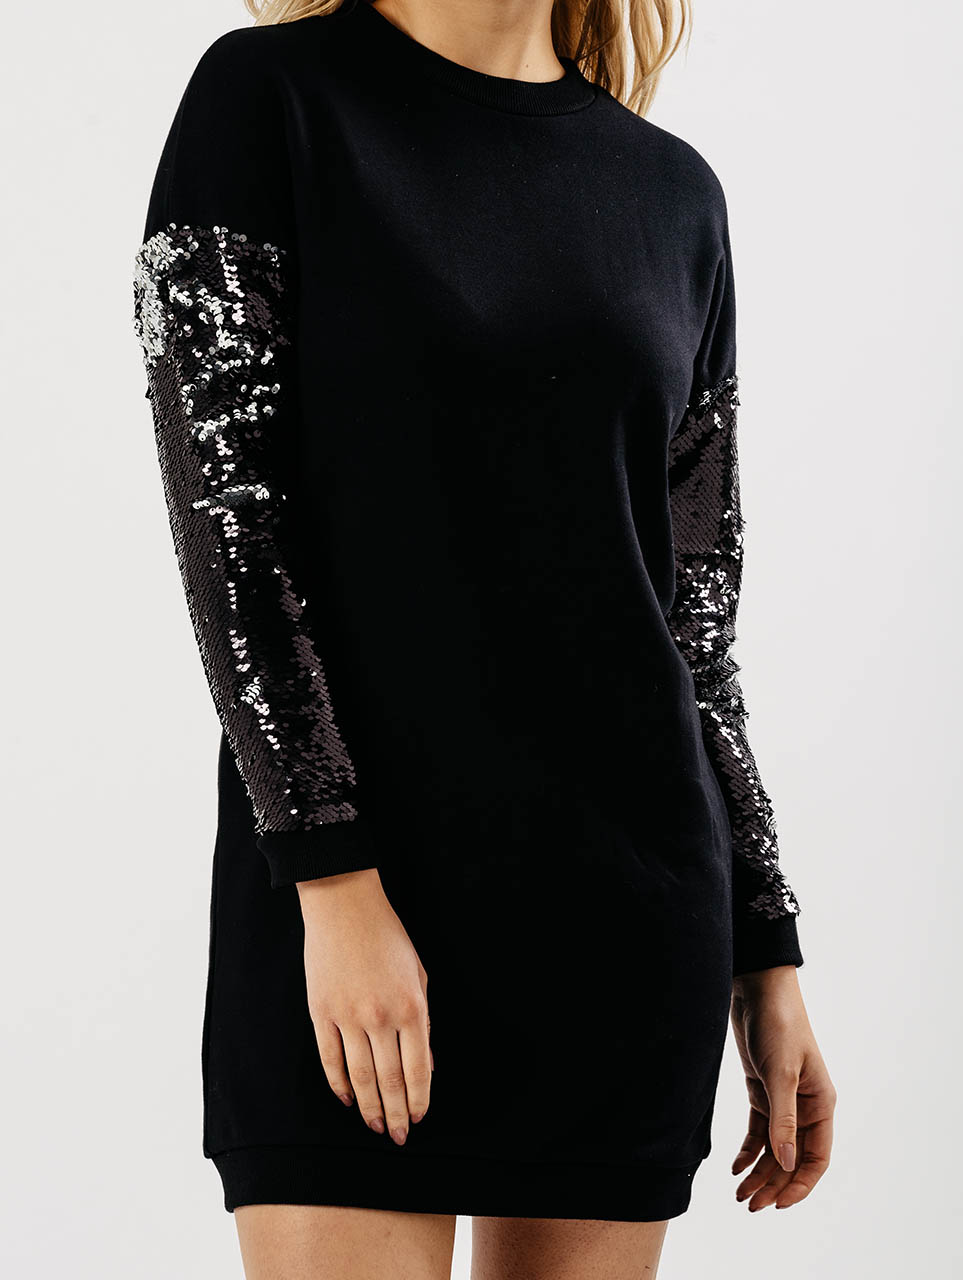 Black Oversized Jumper Dress With Sequin Sleeves L -5099